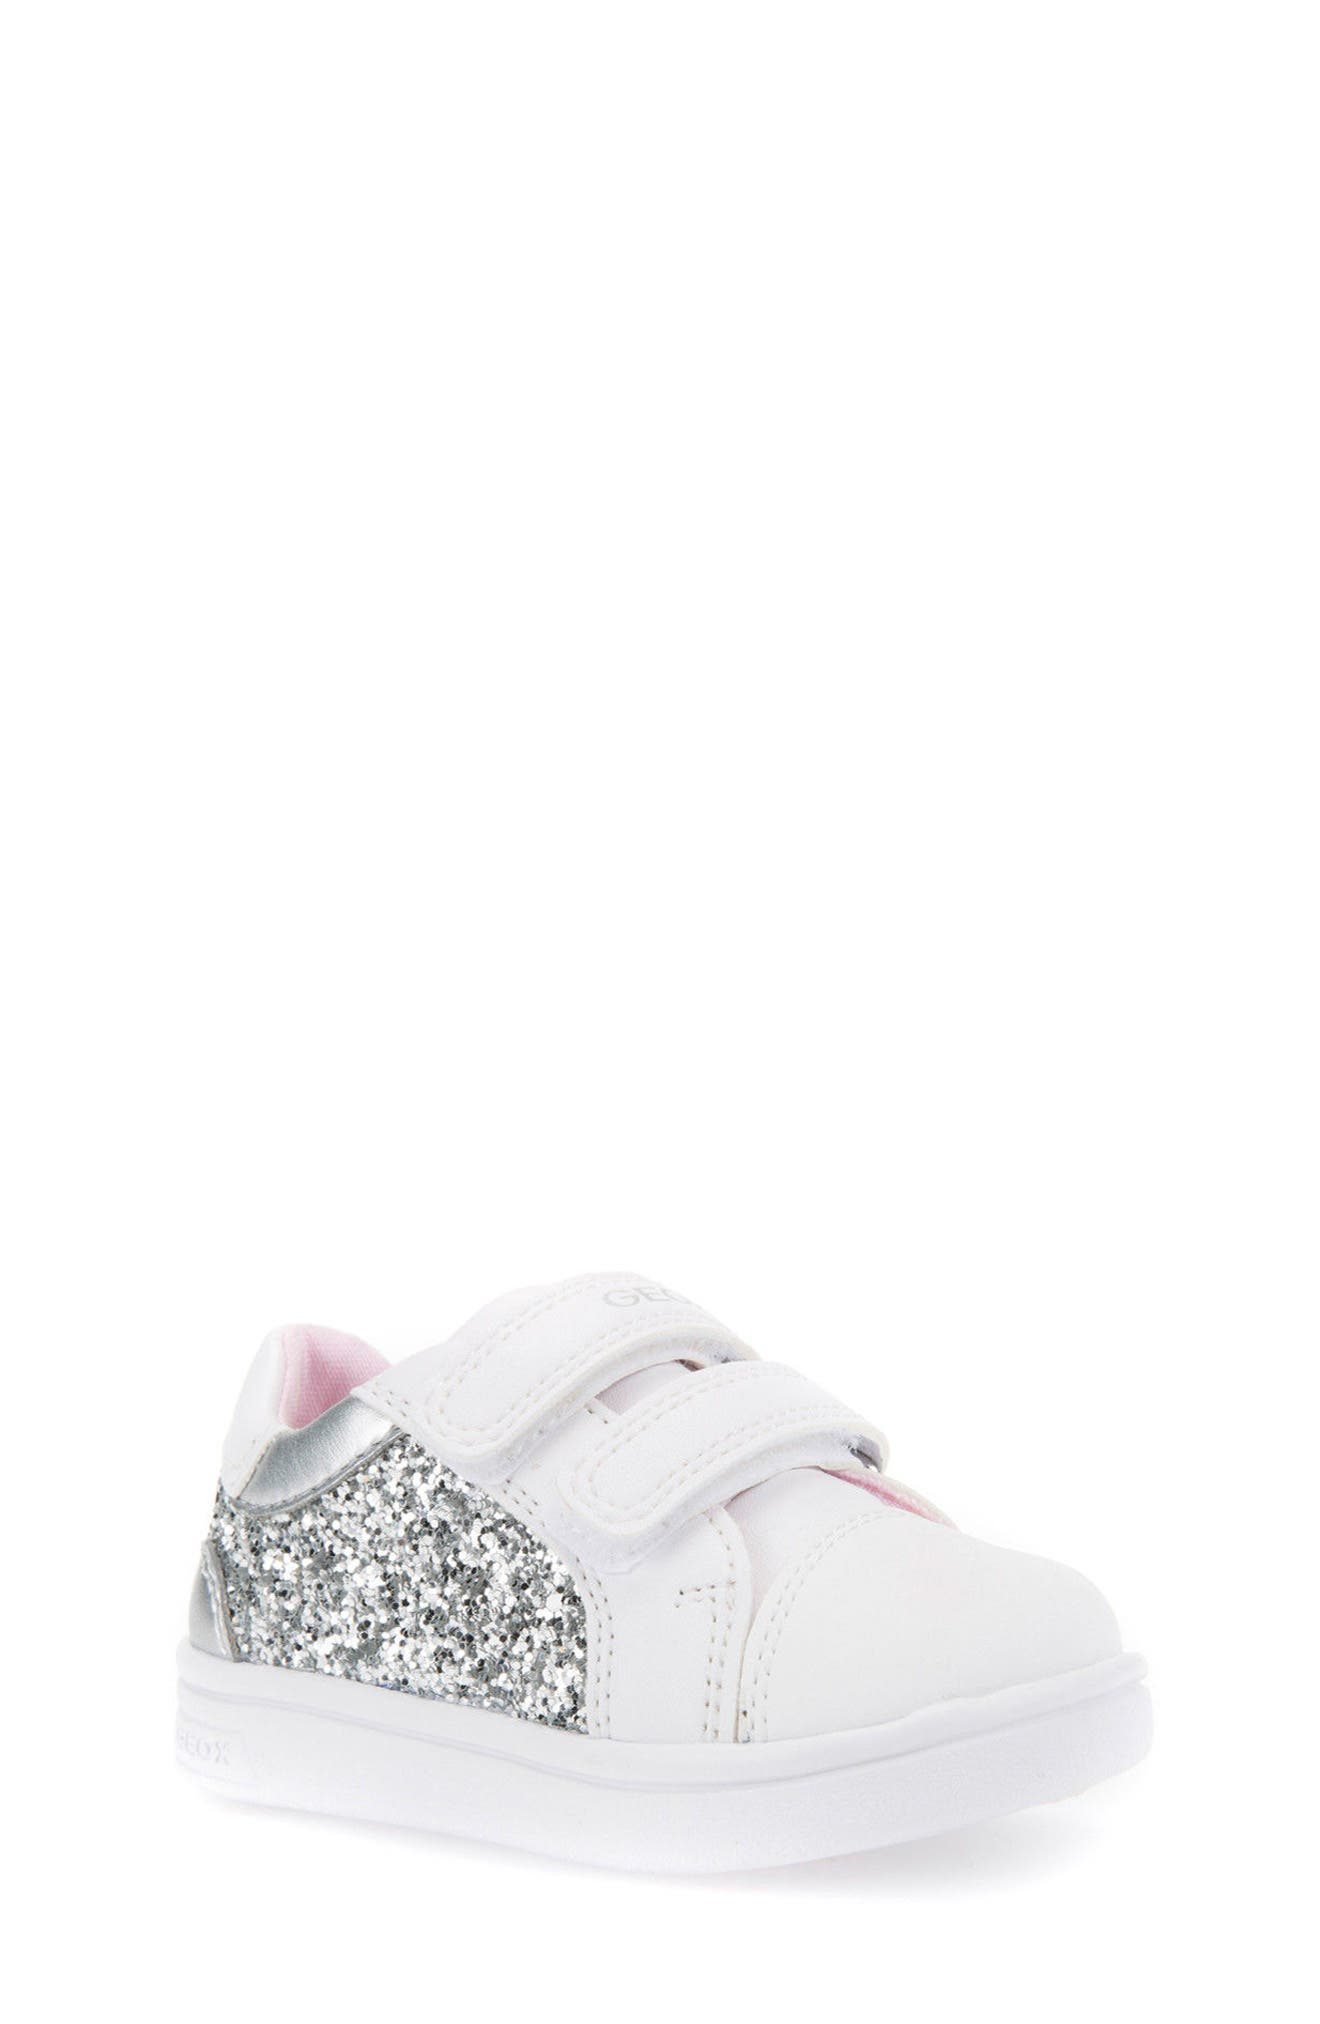 GEOX DJ Rock Glitter Low Top Sneaker, Main, color, 040